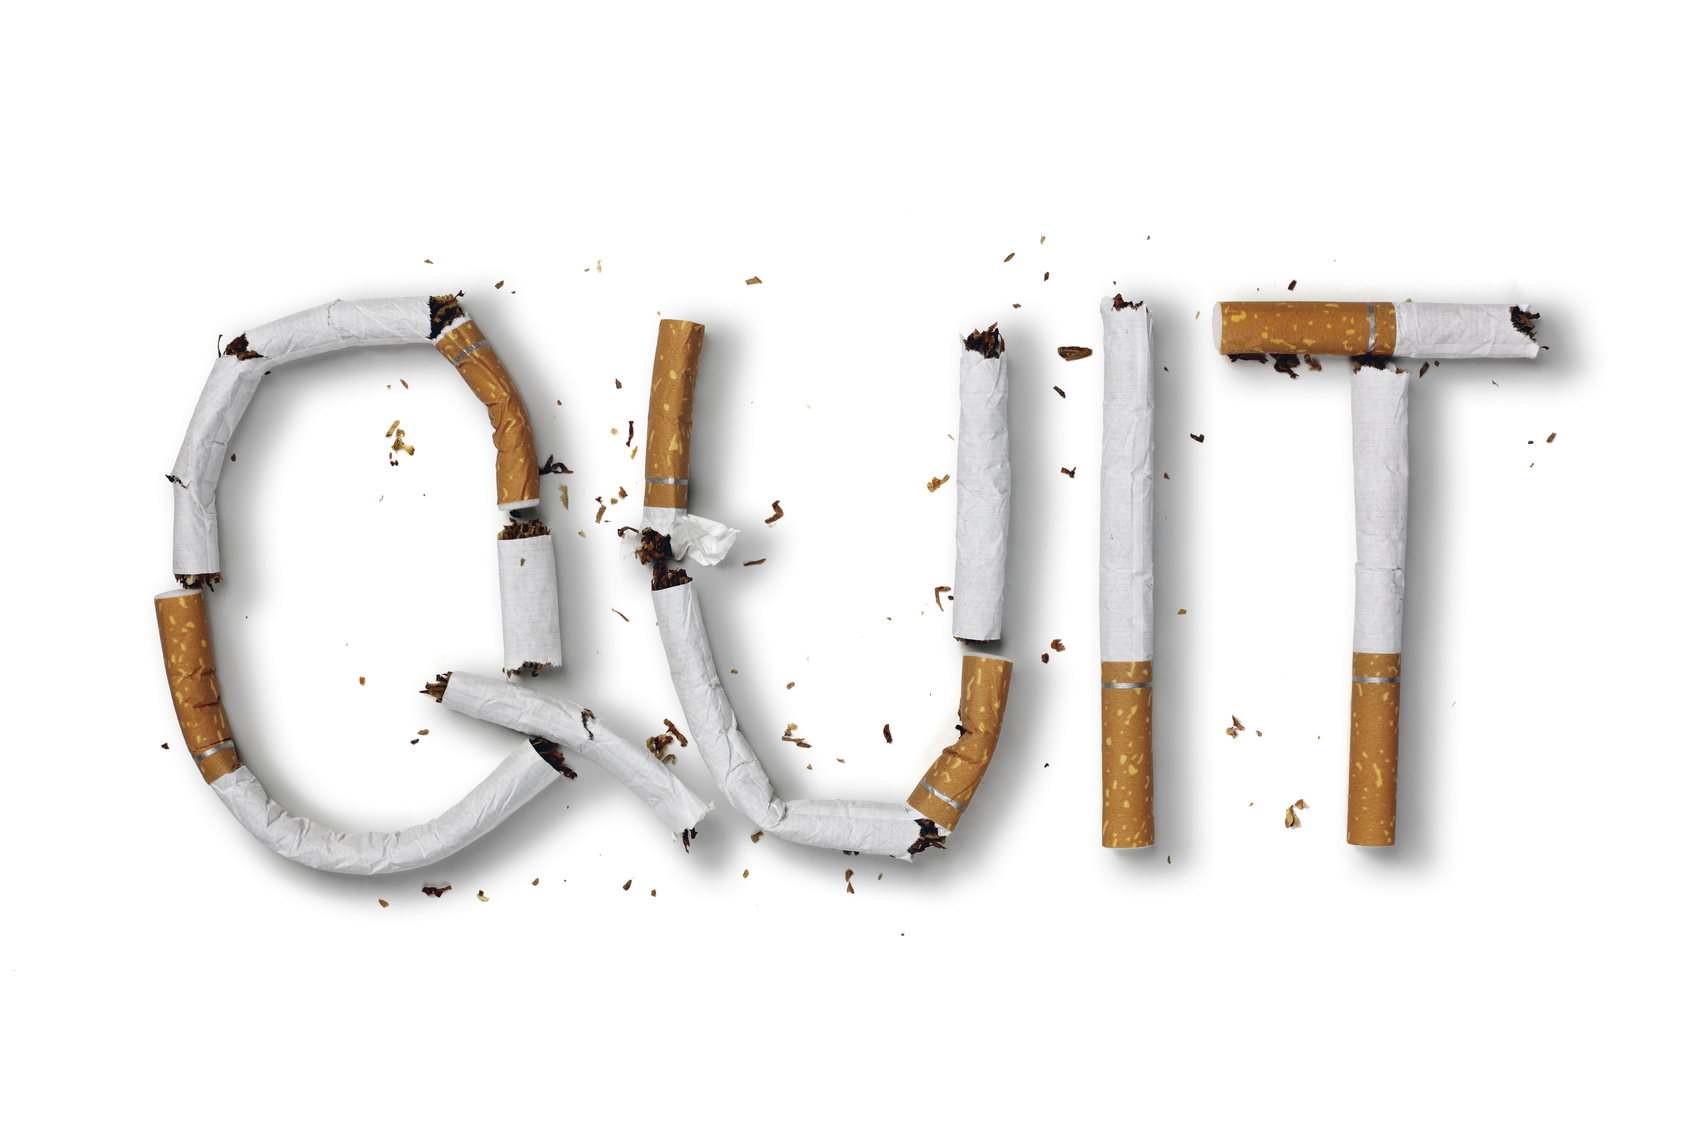 What's the best way to quit smoking? - Harvard Health Blog - Harvard Health Publishing